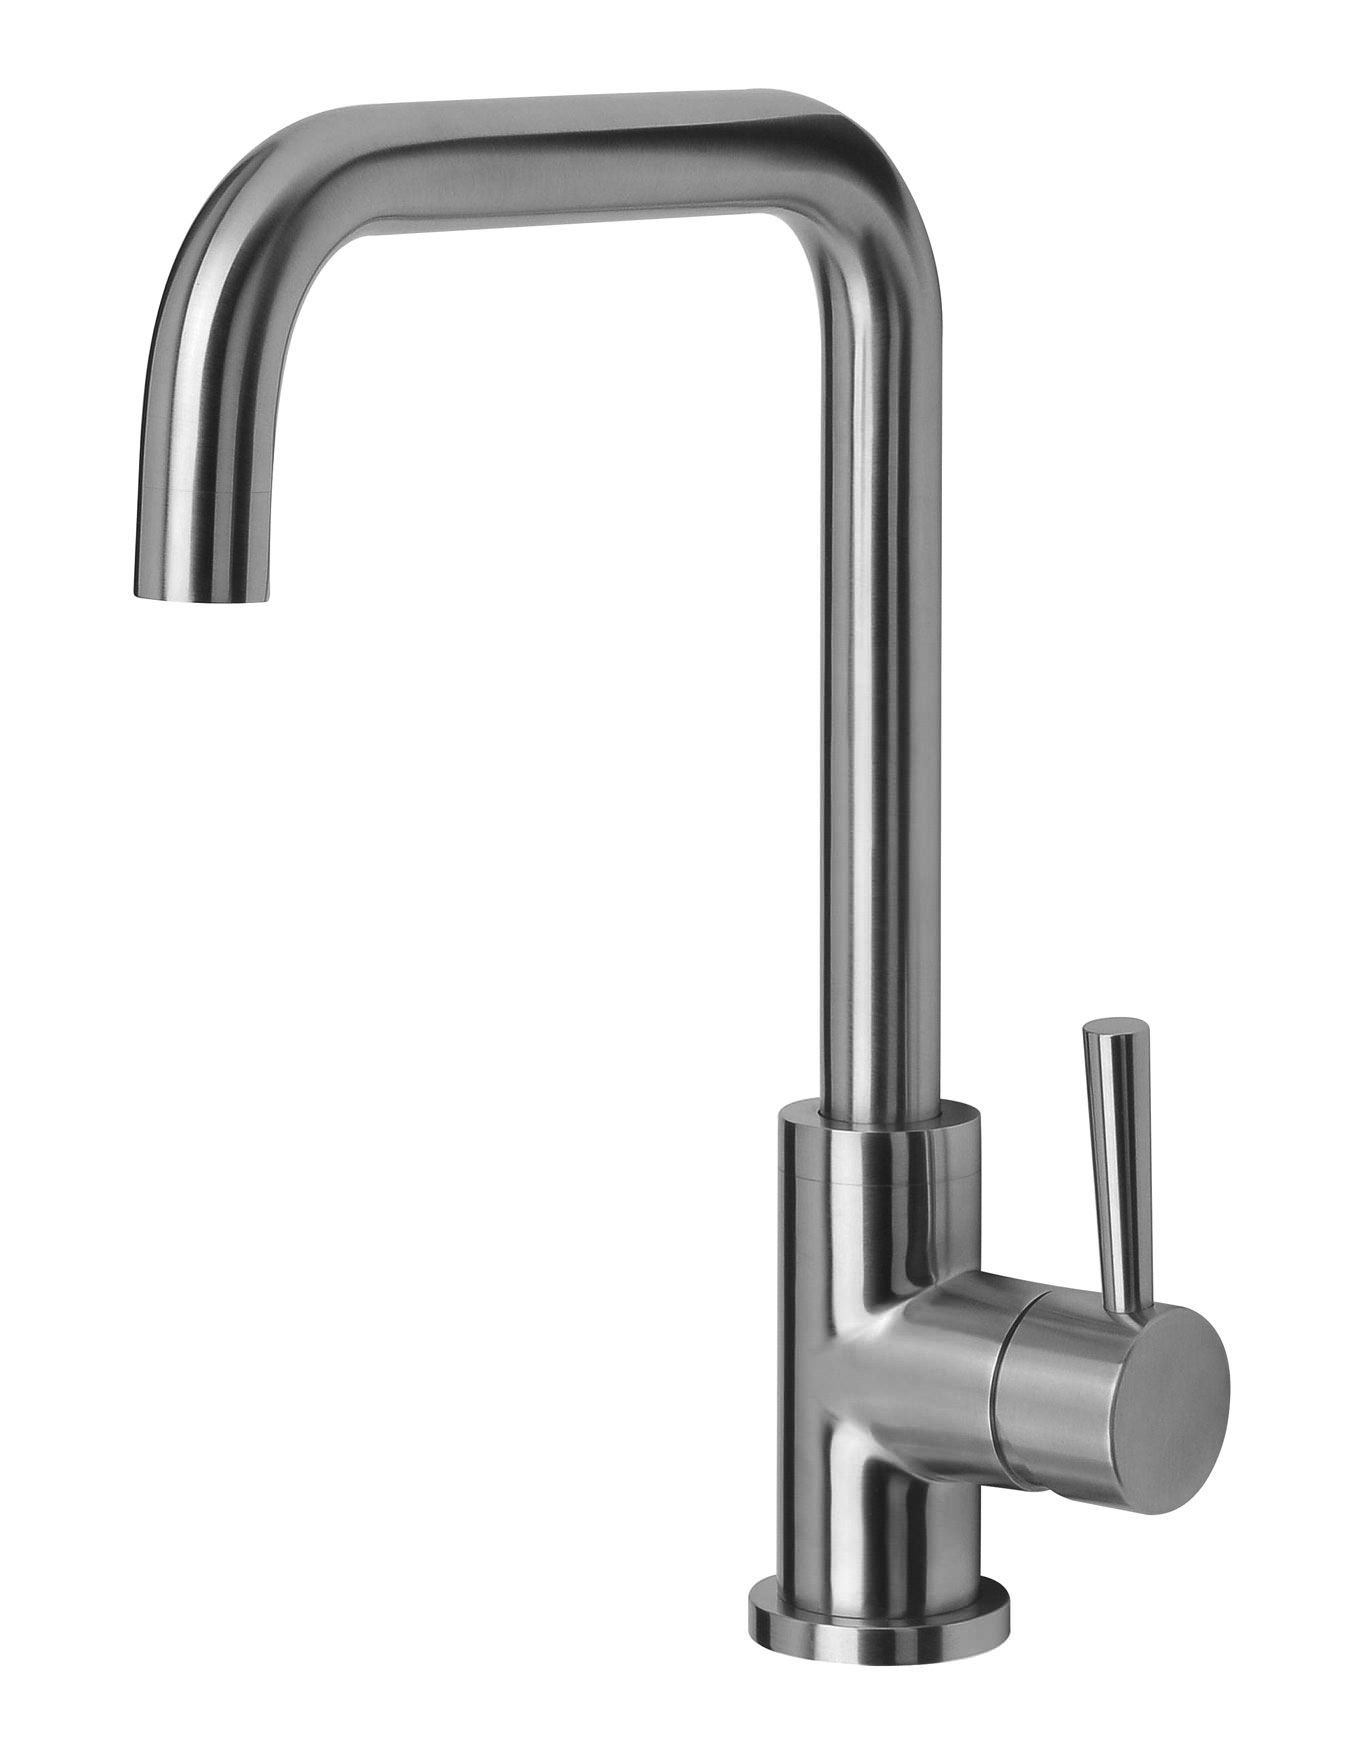 taps for kitchen sinks uk mayfair melo glo kitchen sink mixer tap with led light nozzle 8437